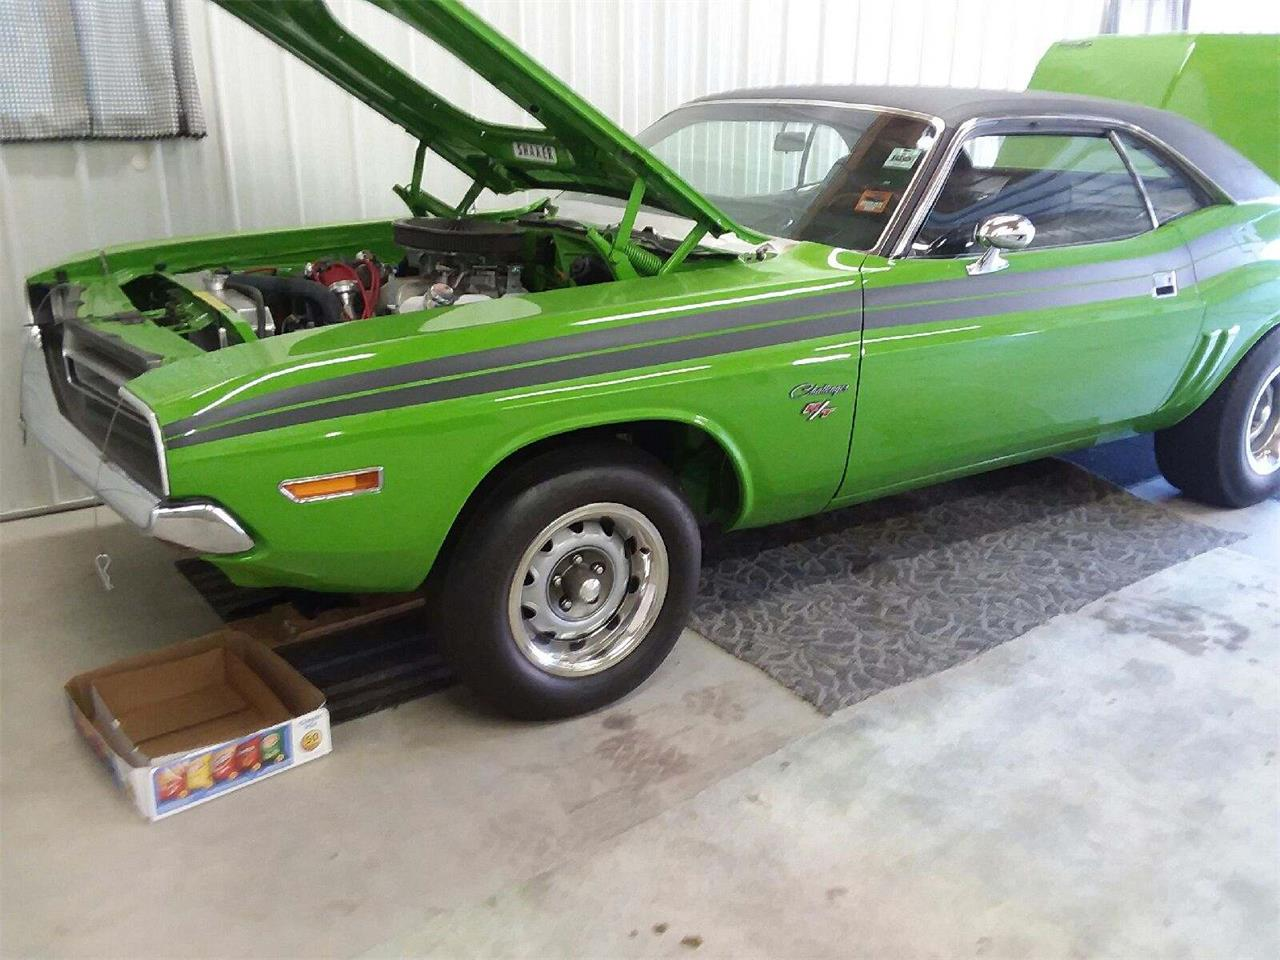 1971 Dodge Challenger R/T for sale in Waterford, PA – photo 16